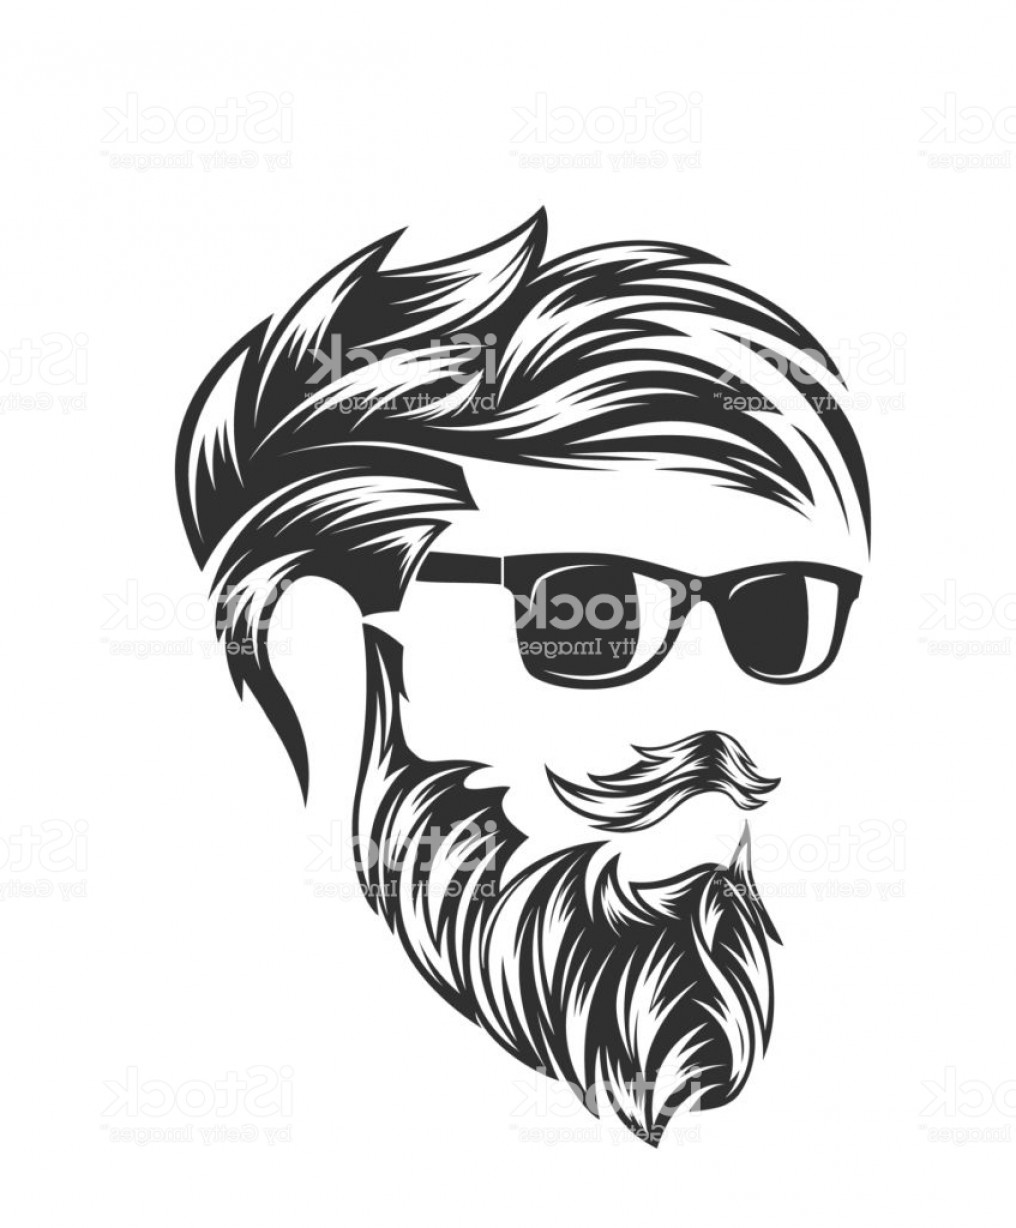 Mustache Face Vector: Mens Hairstyles And Hirecut With Beard Mustache In Face Gm